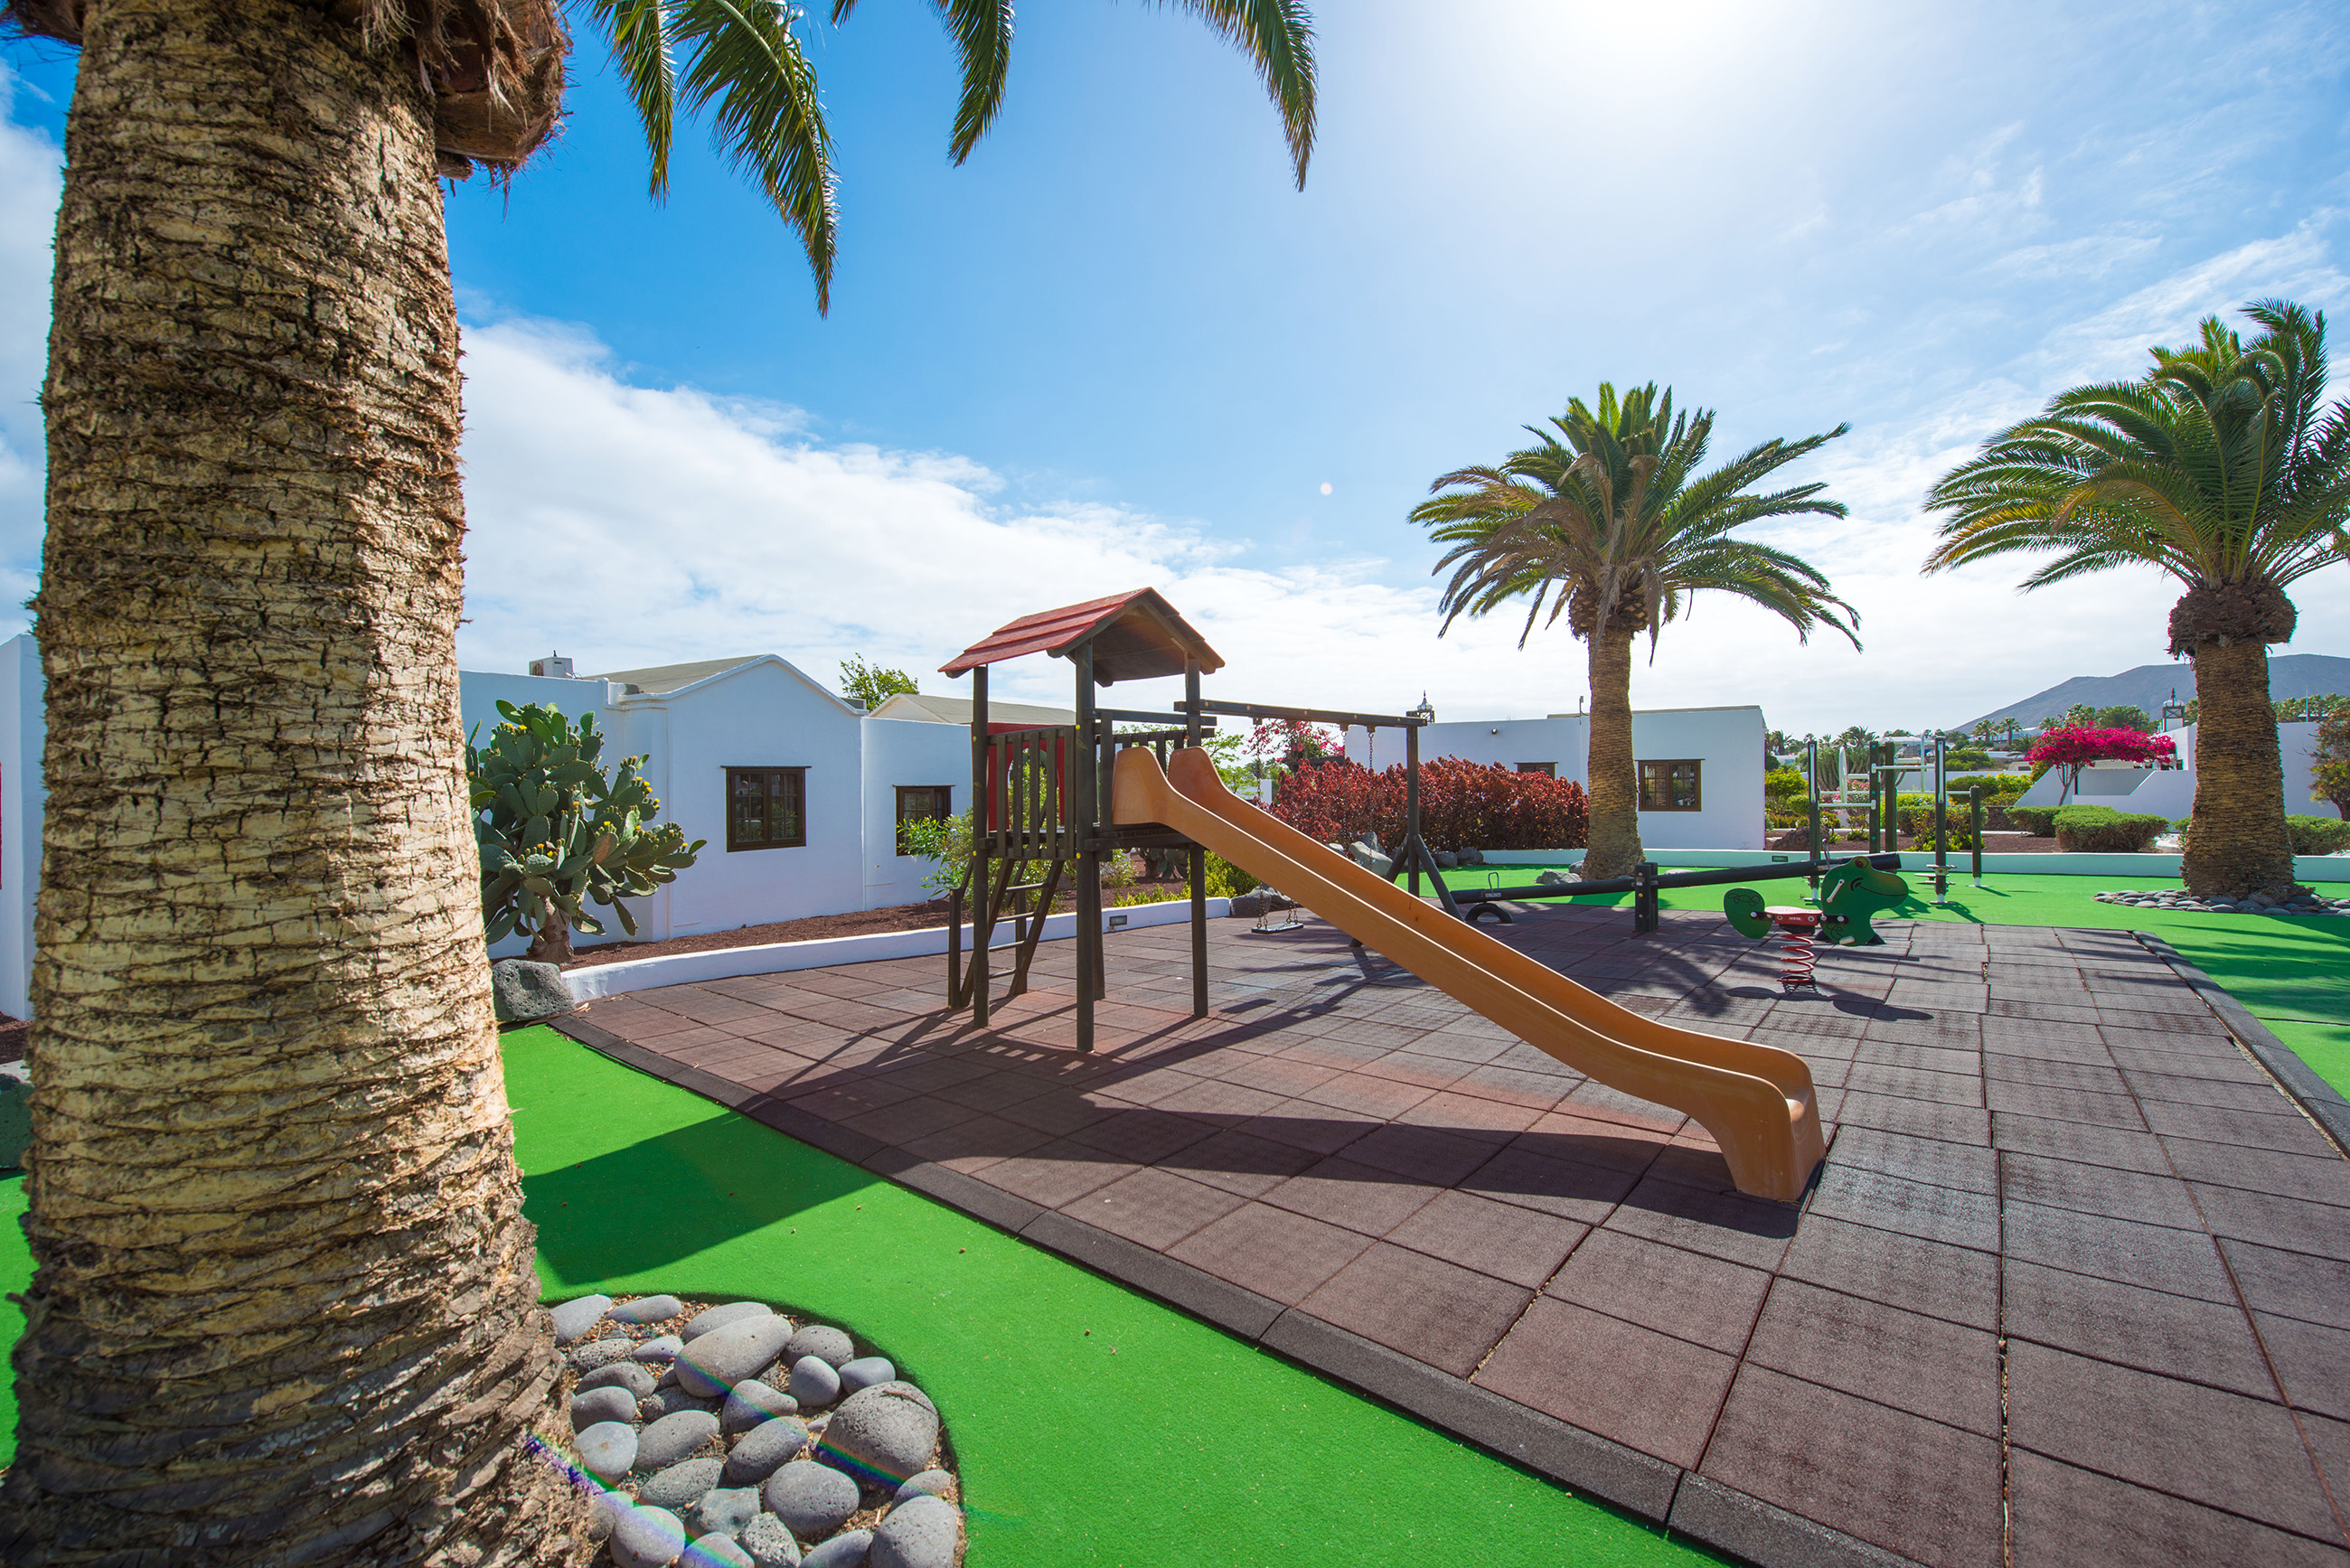 Las Casitas Playground